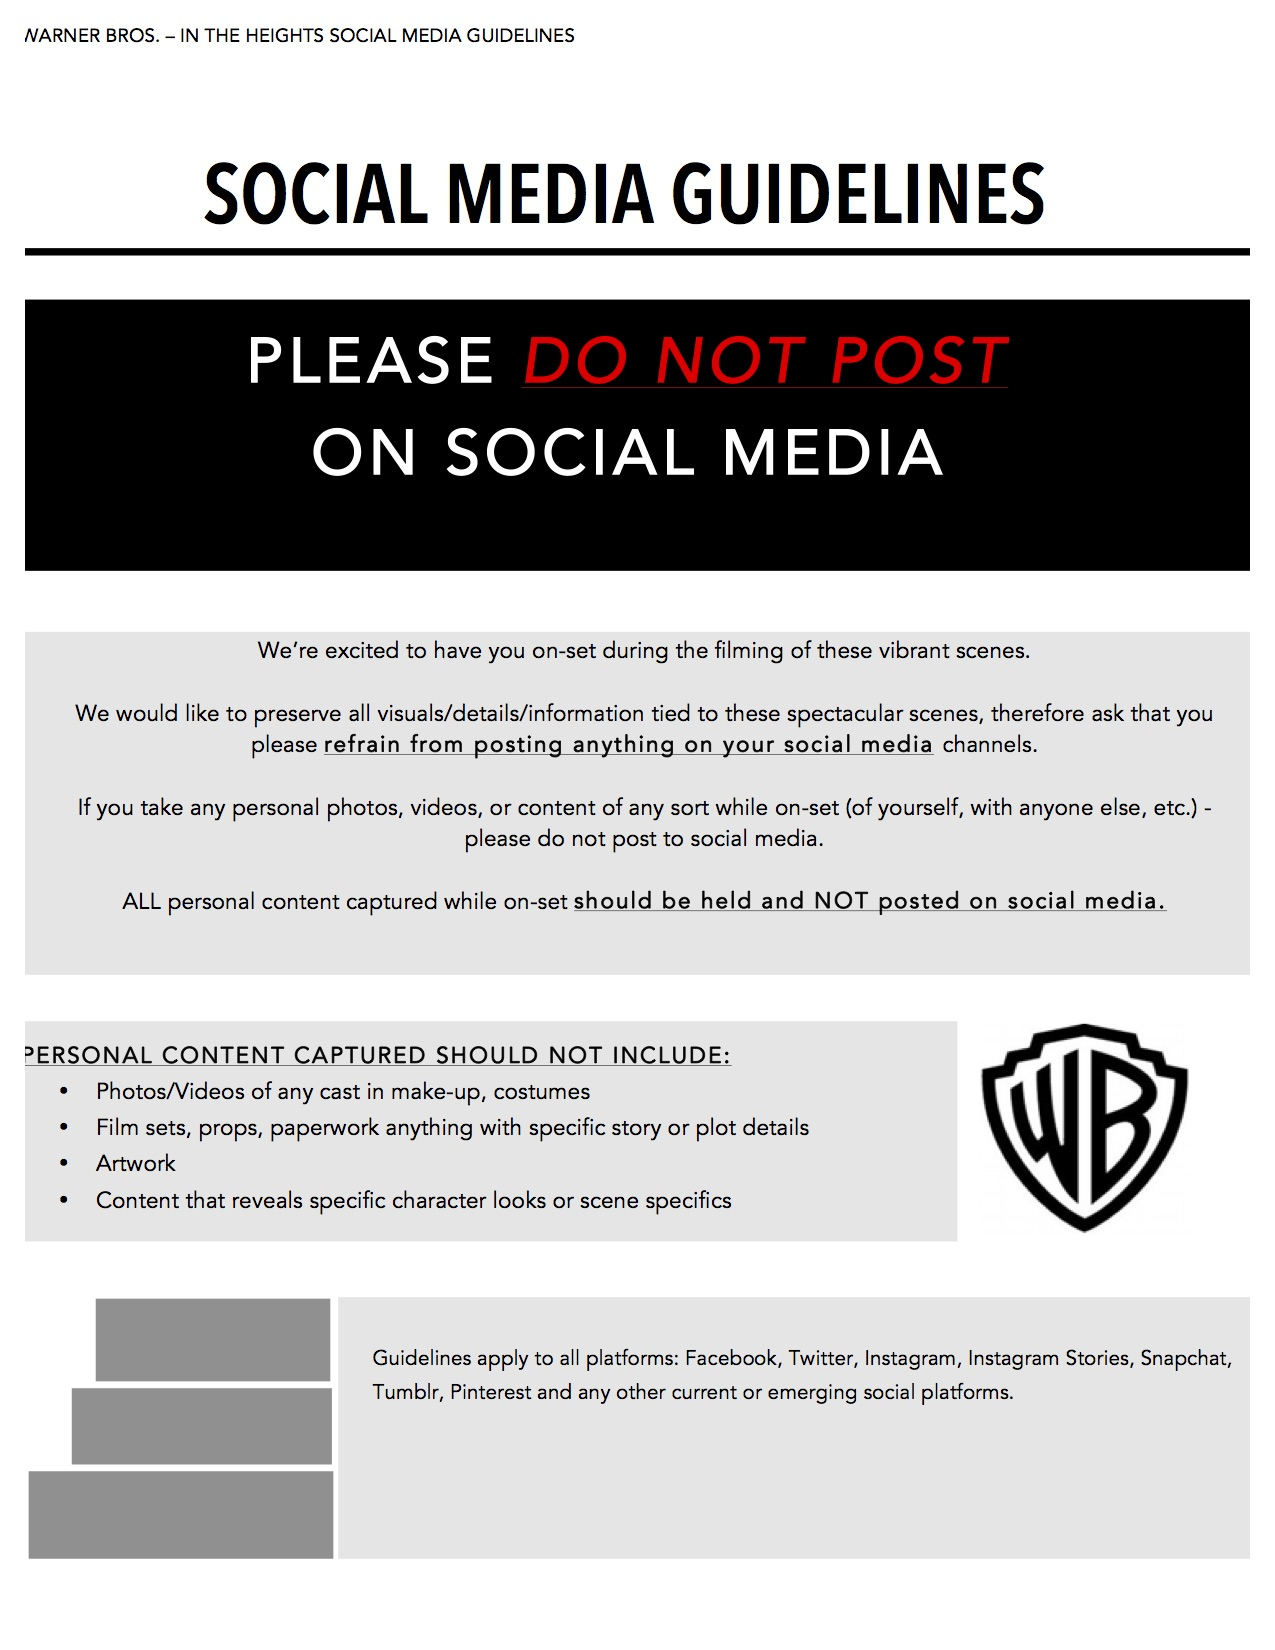 Blackout Social Guidelines_ITH.jpg